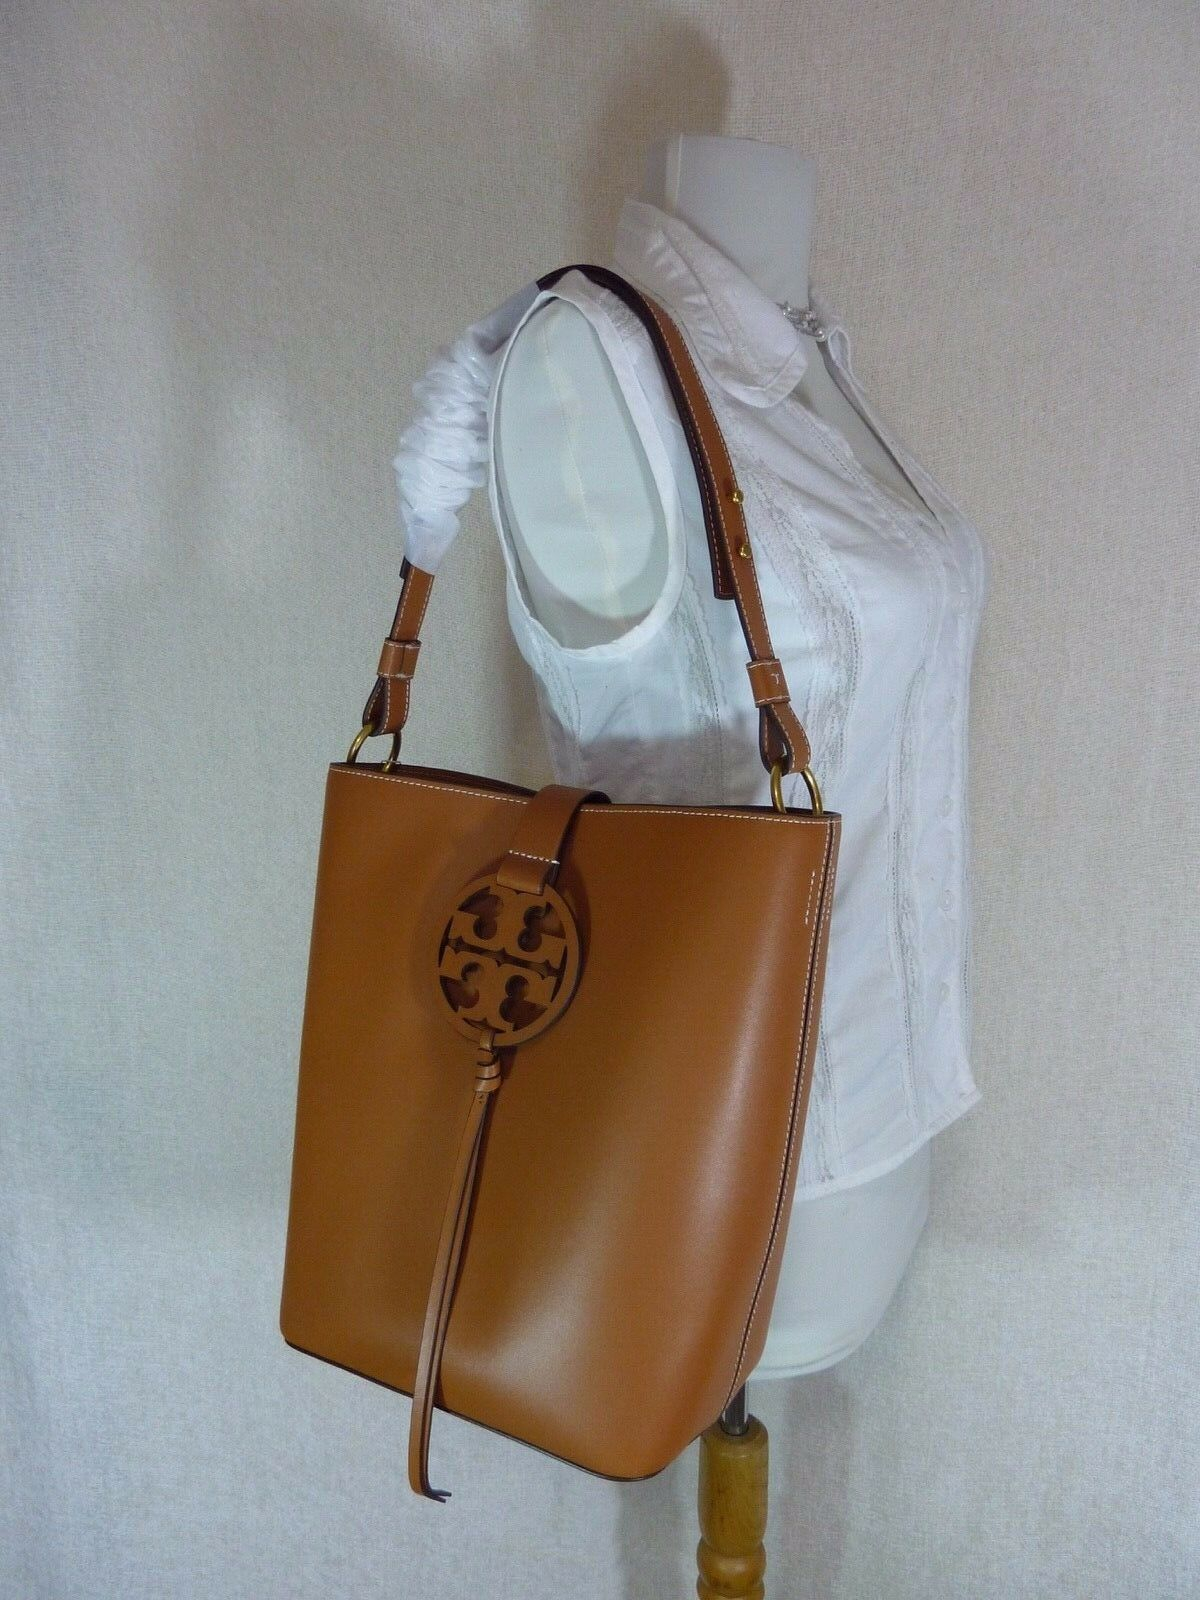 NWT Tory Burch Aged Camello Miller Hobo/Shoulder Tote - Minor Imperfection image 2